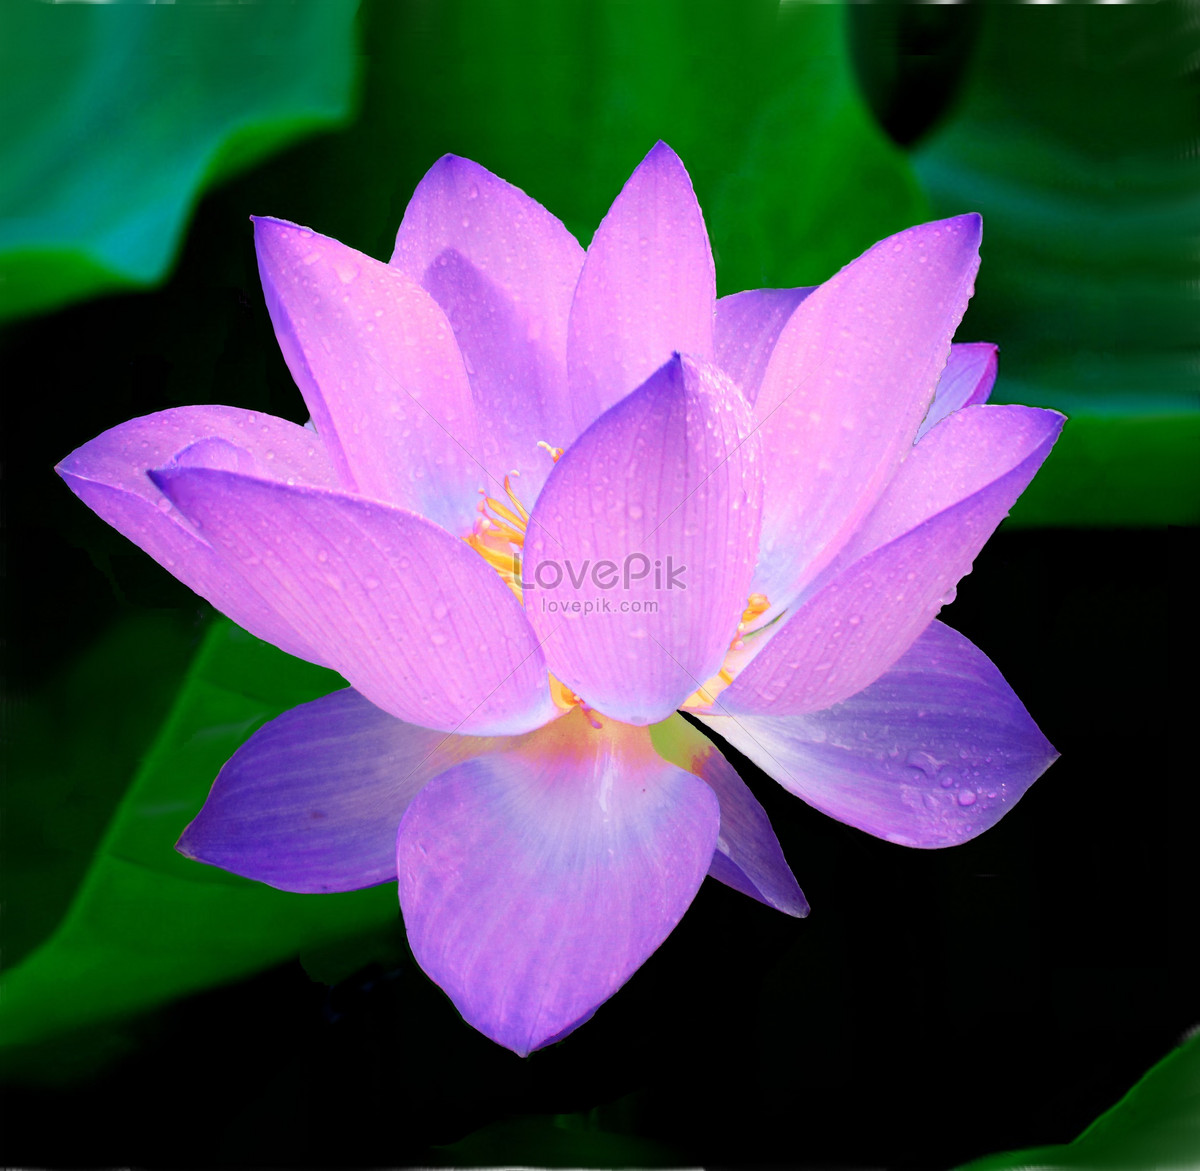 Purple lily flowers photo imagepicture free download purple lily flowers izmirmasajfo